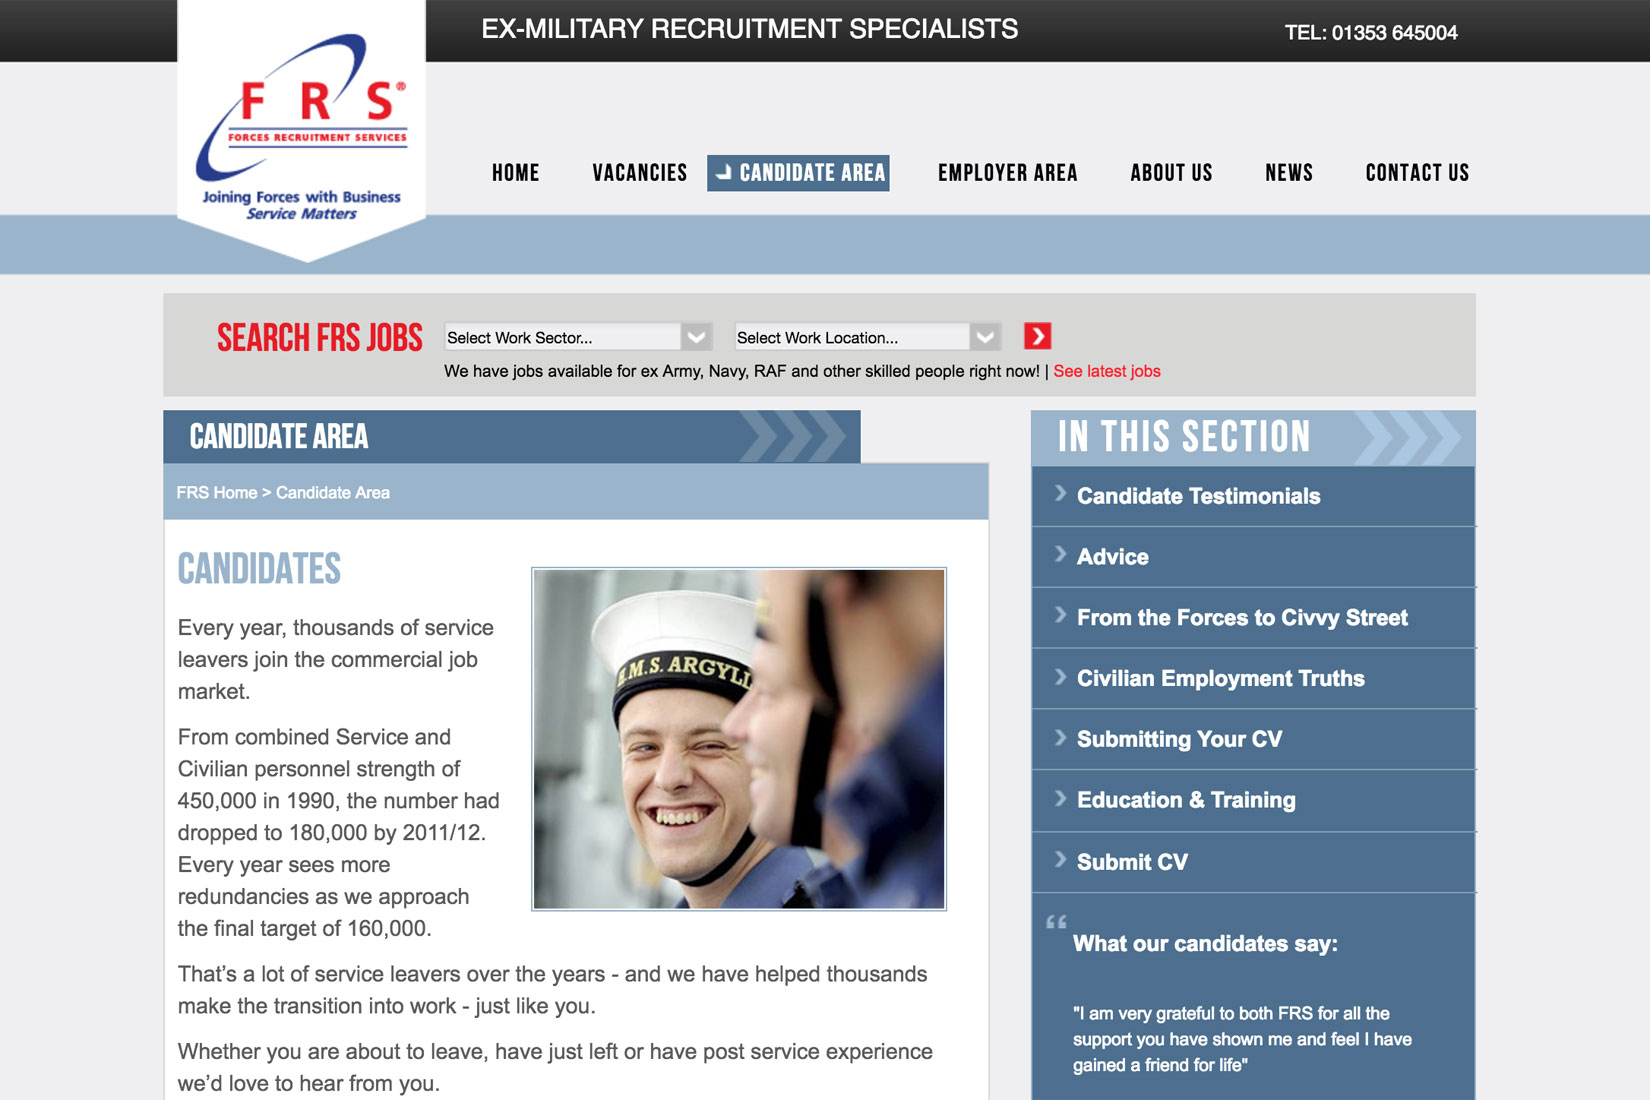 Forces Recruitment Services Candidate Page - Built by Presto Web Design